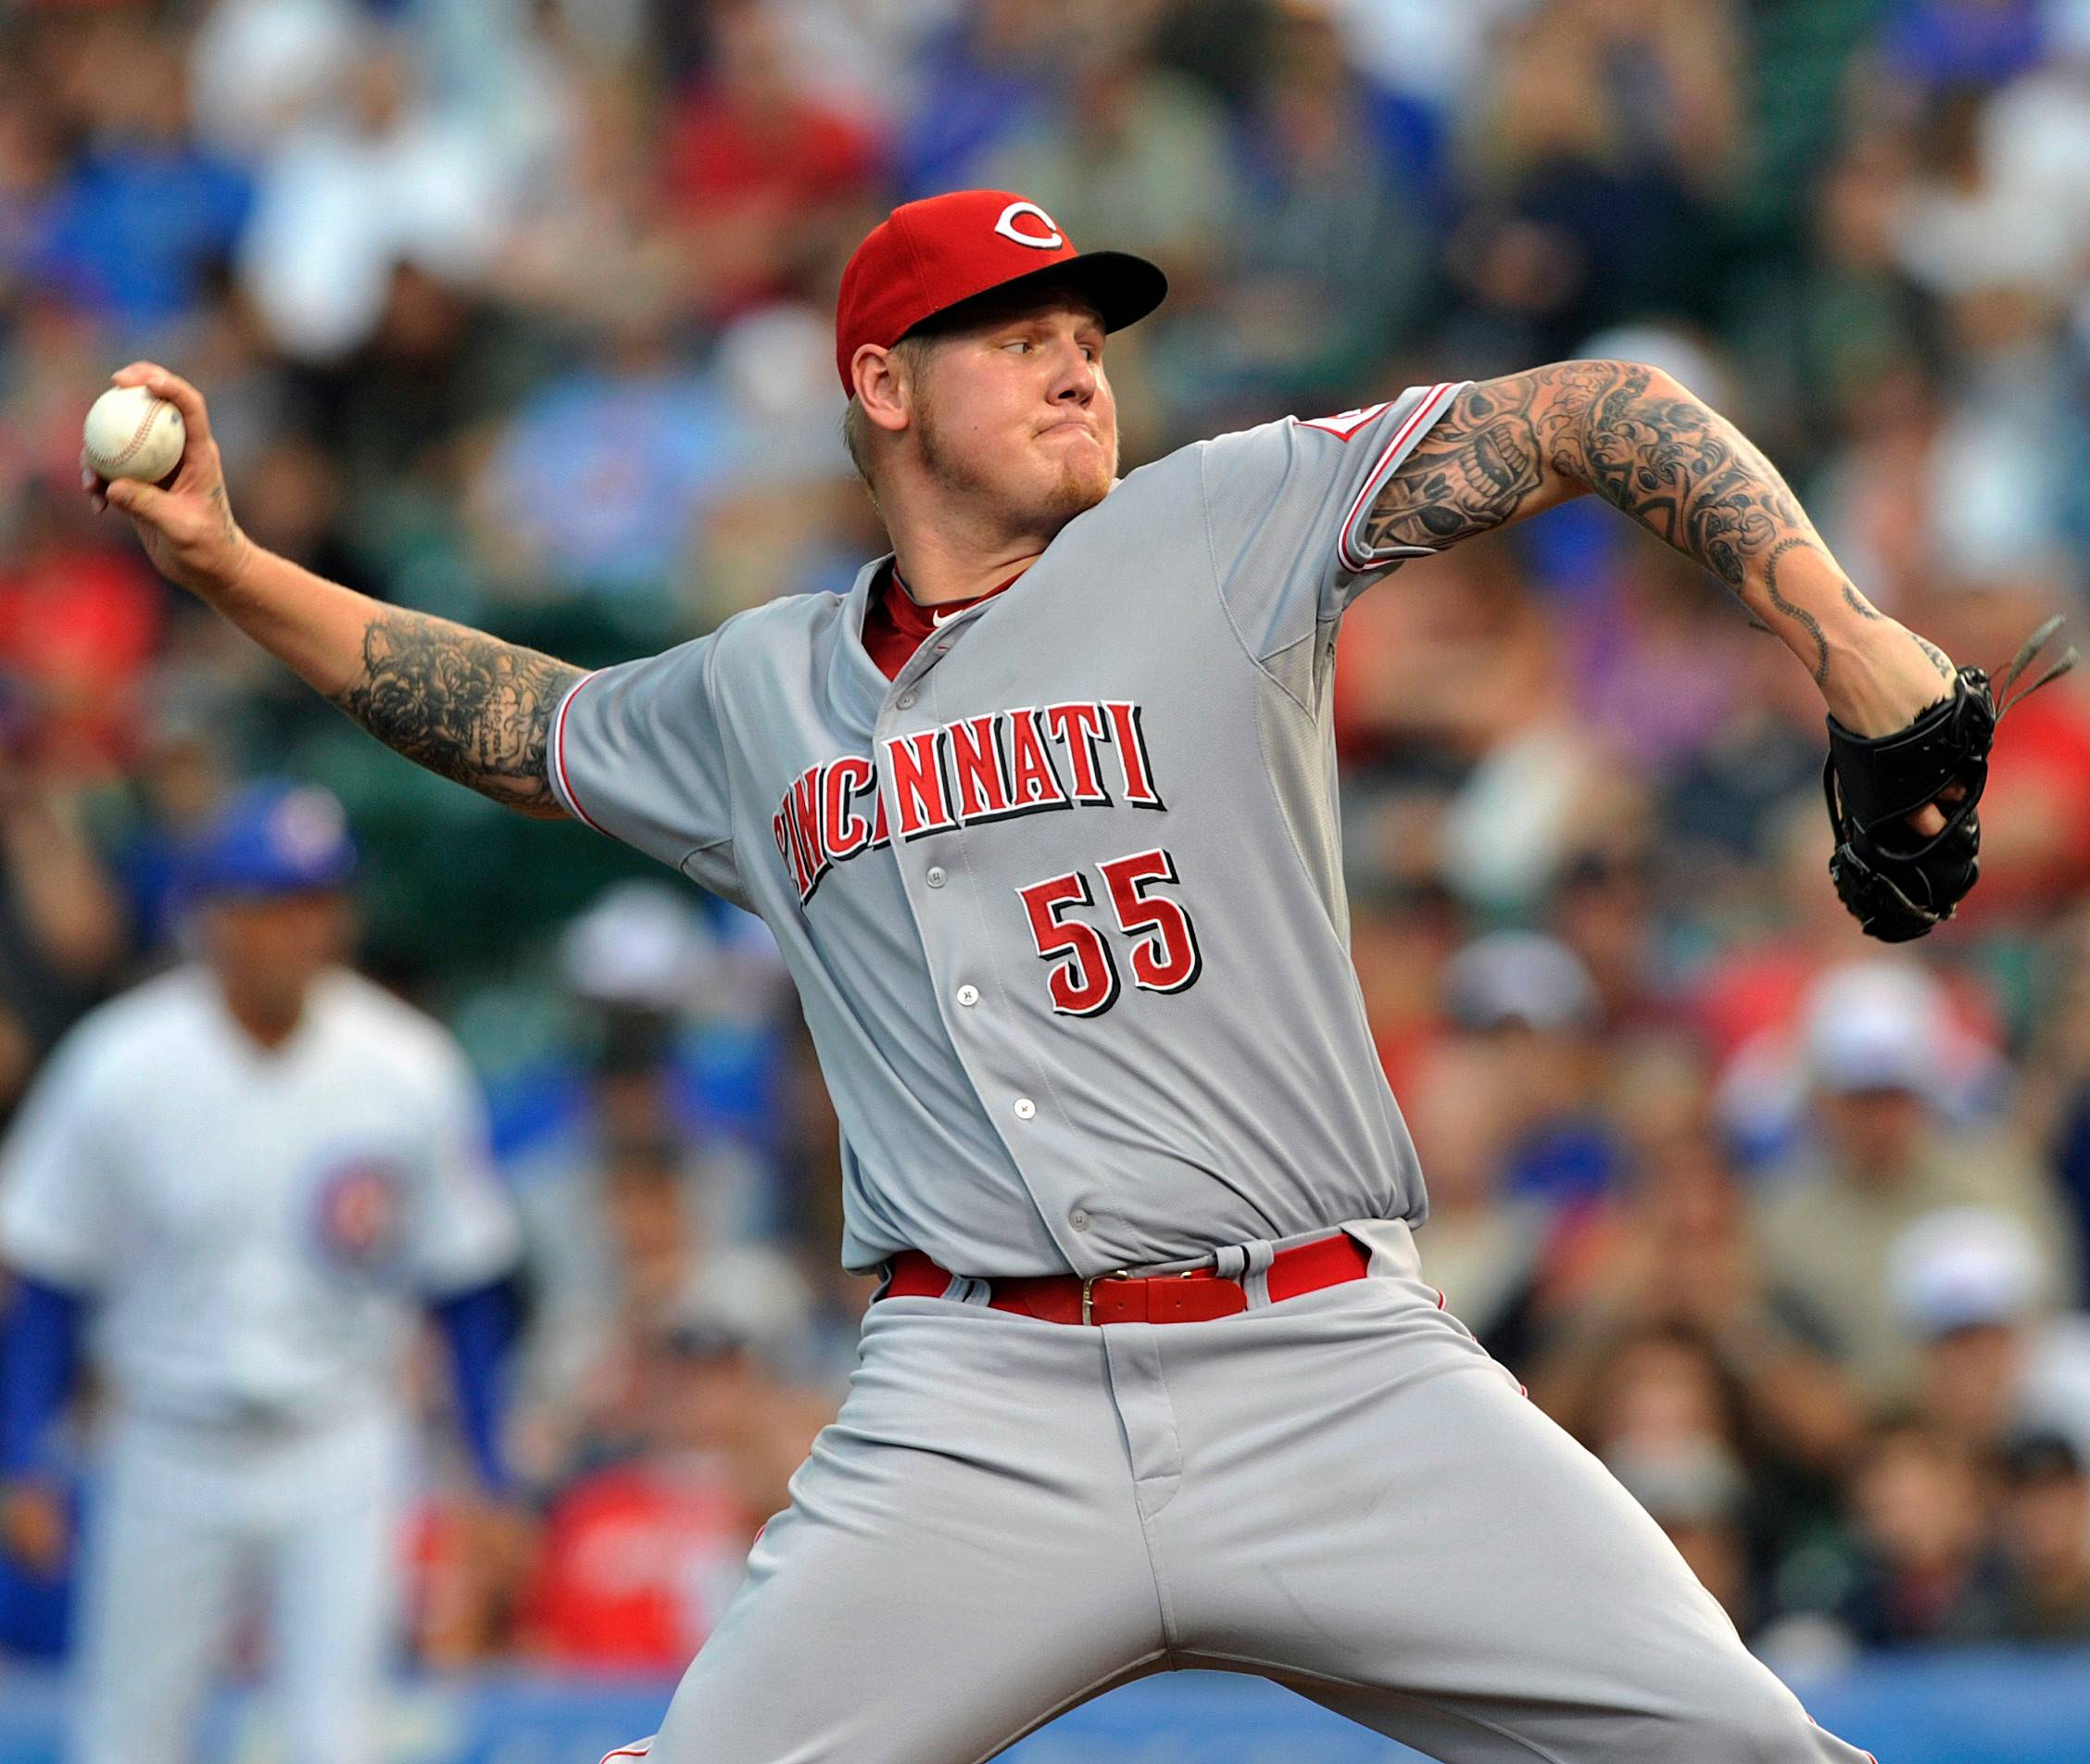 The Chicago White Sox and free agent pitcher Mat Latos have agreed to deal, according to multiple reports on Twitter.